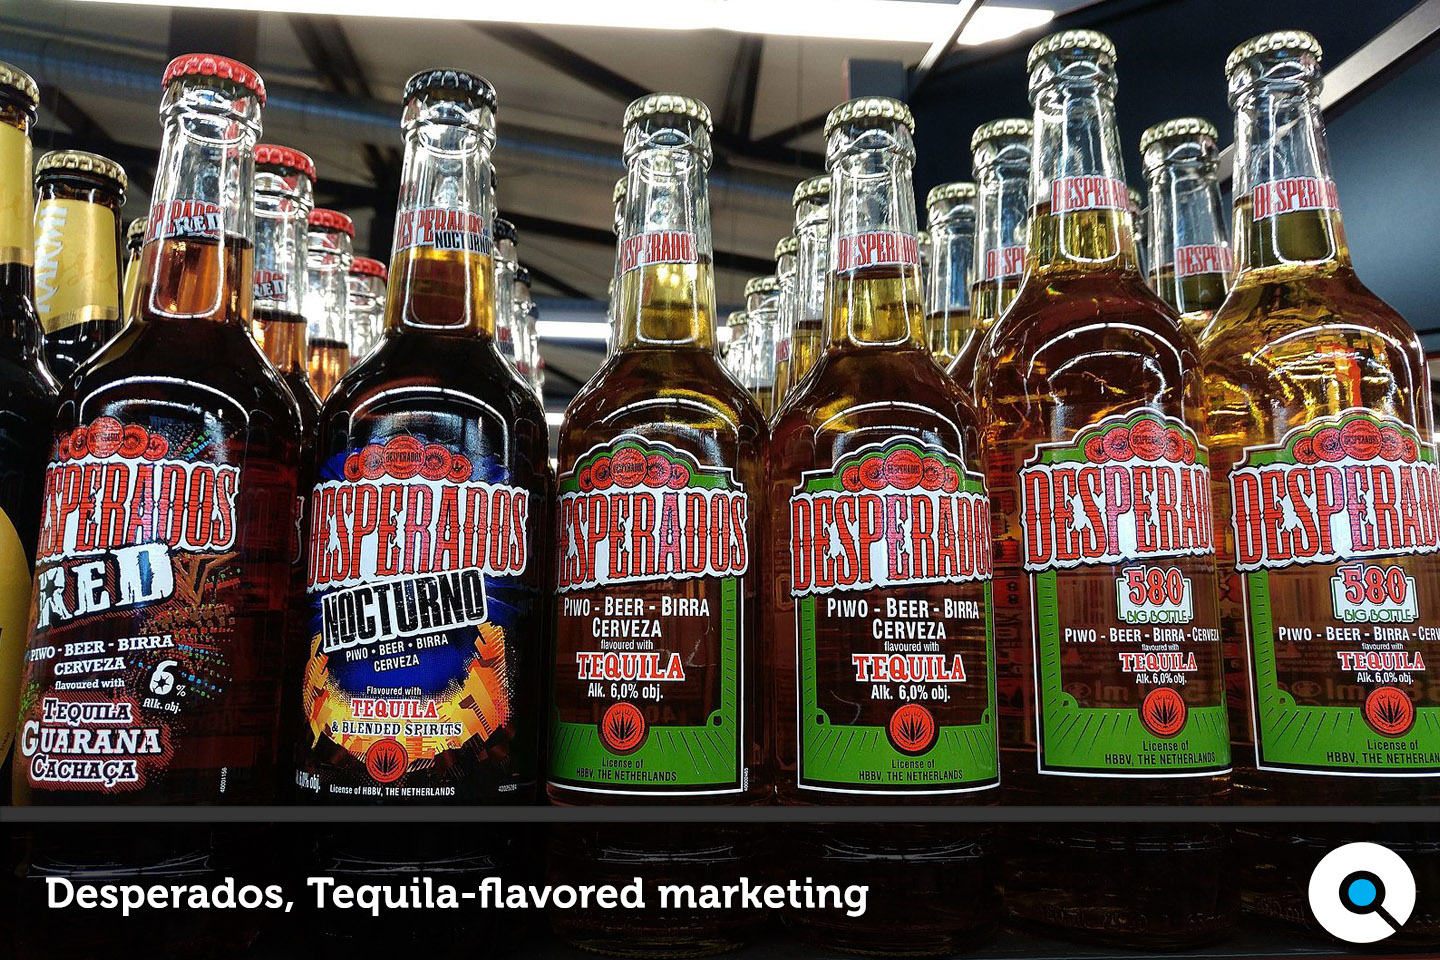 Desperados, Tequila-flavored marketing - Lincelot - FI